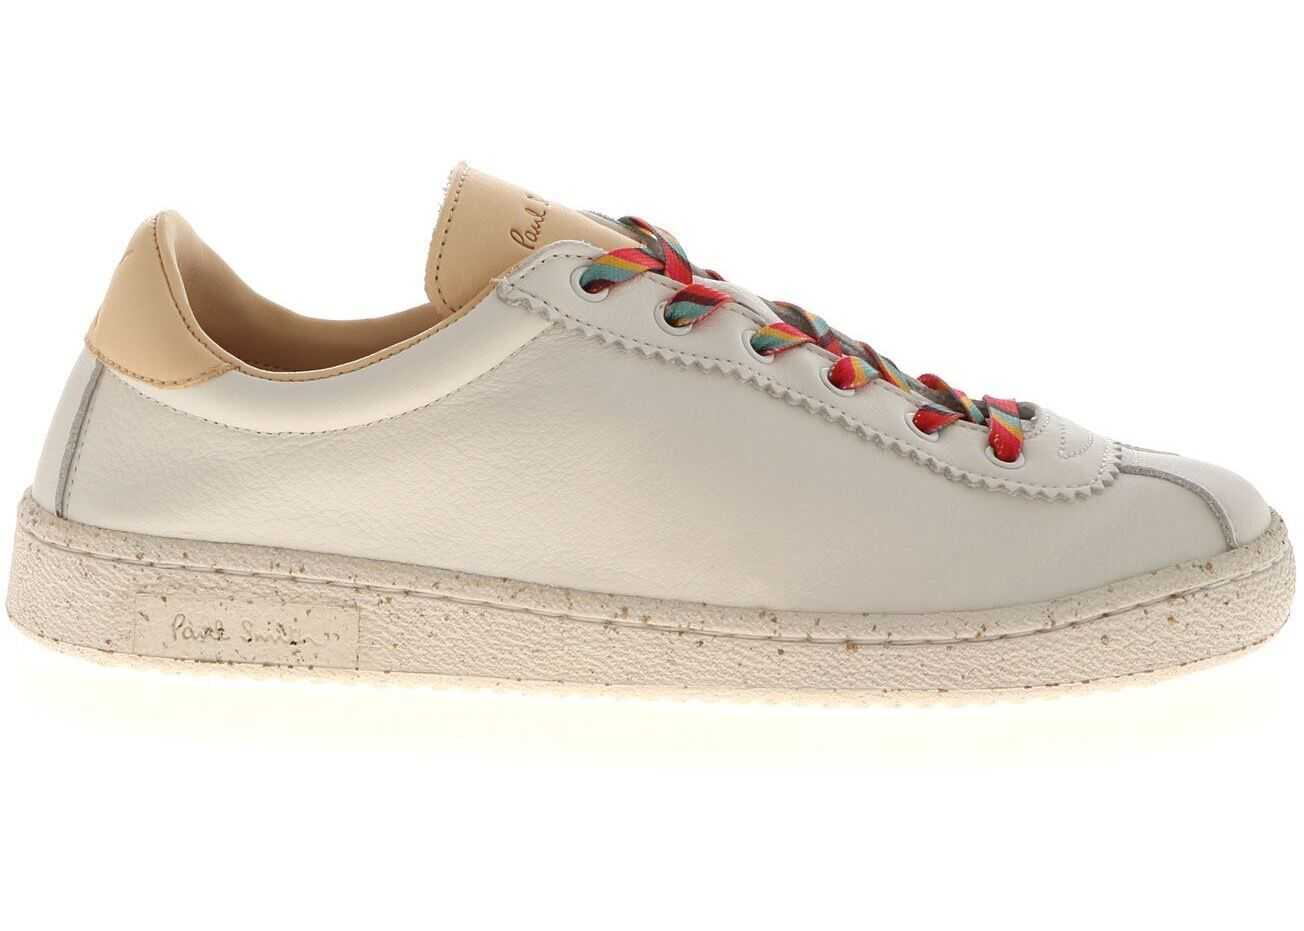 Paul Smith Dusty Sneakers In White White